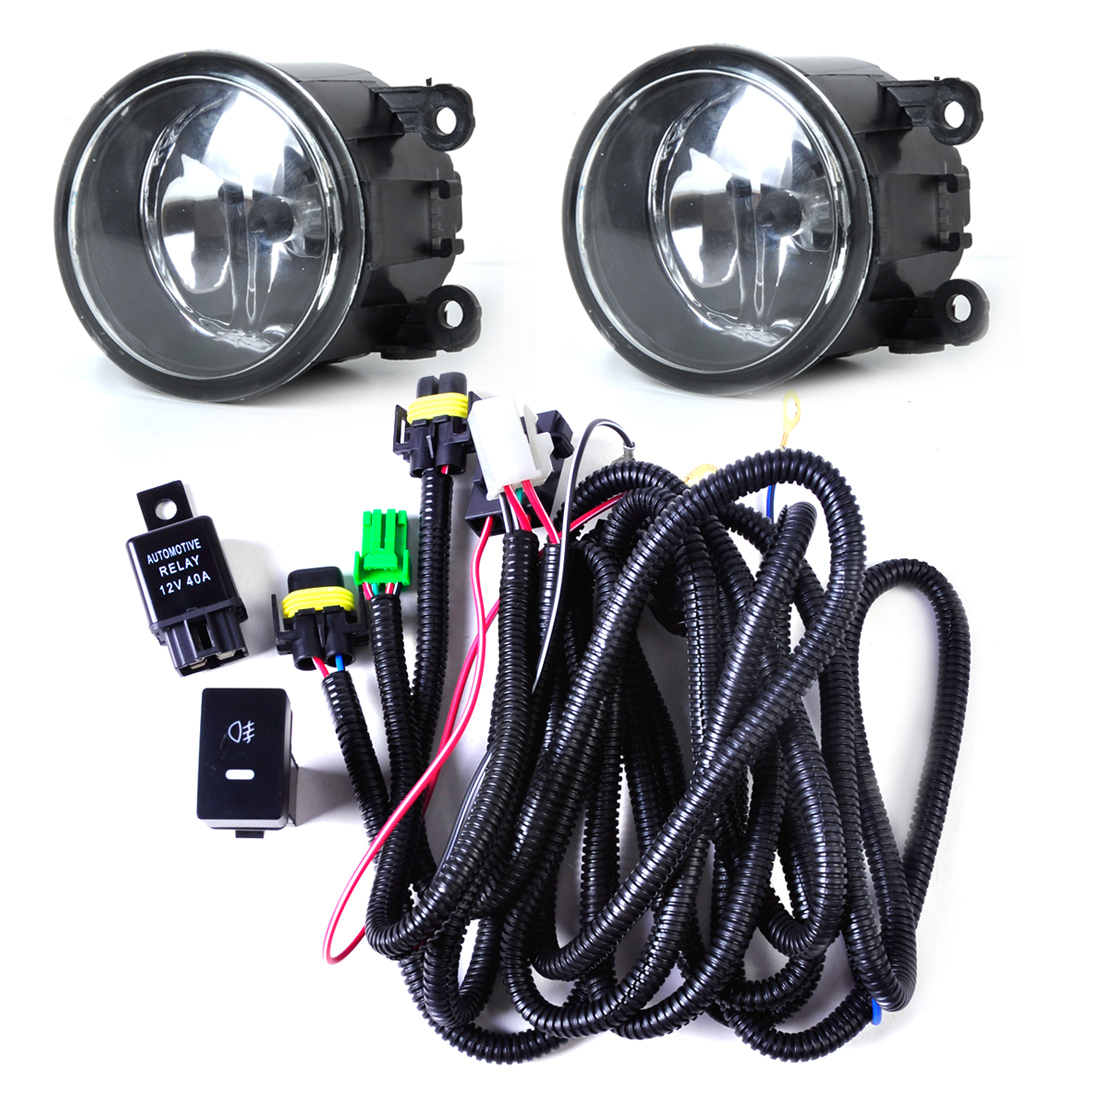 Fogswitch likewise Ebca O as well D T Can I Use Factory Fog Light Switch Aftermarket Fog Lights Wiringdiagram further Beler Wiring Harness Sockets Switch X H Fog Lights L  F Z Aa Kit For Ford also Foglight Switch Plug. on aftermarket fog light switch wiring diagram